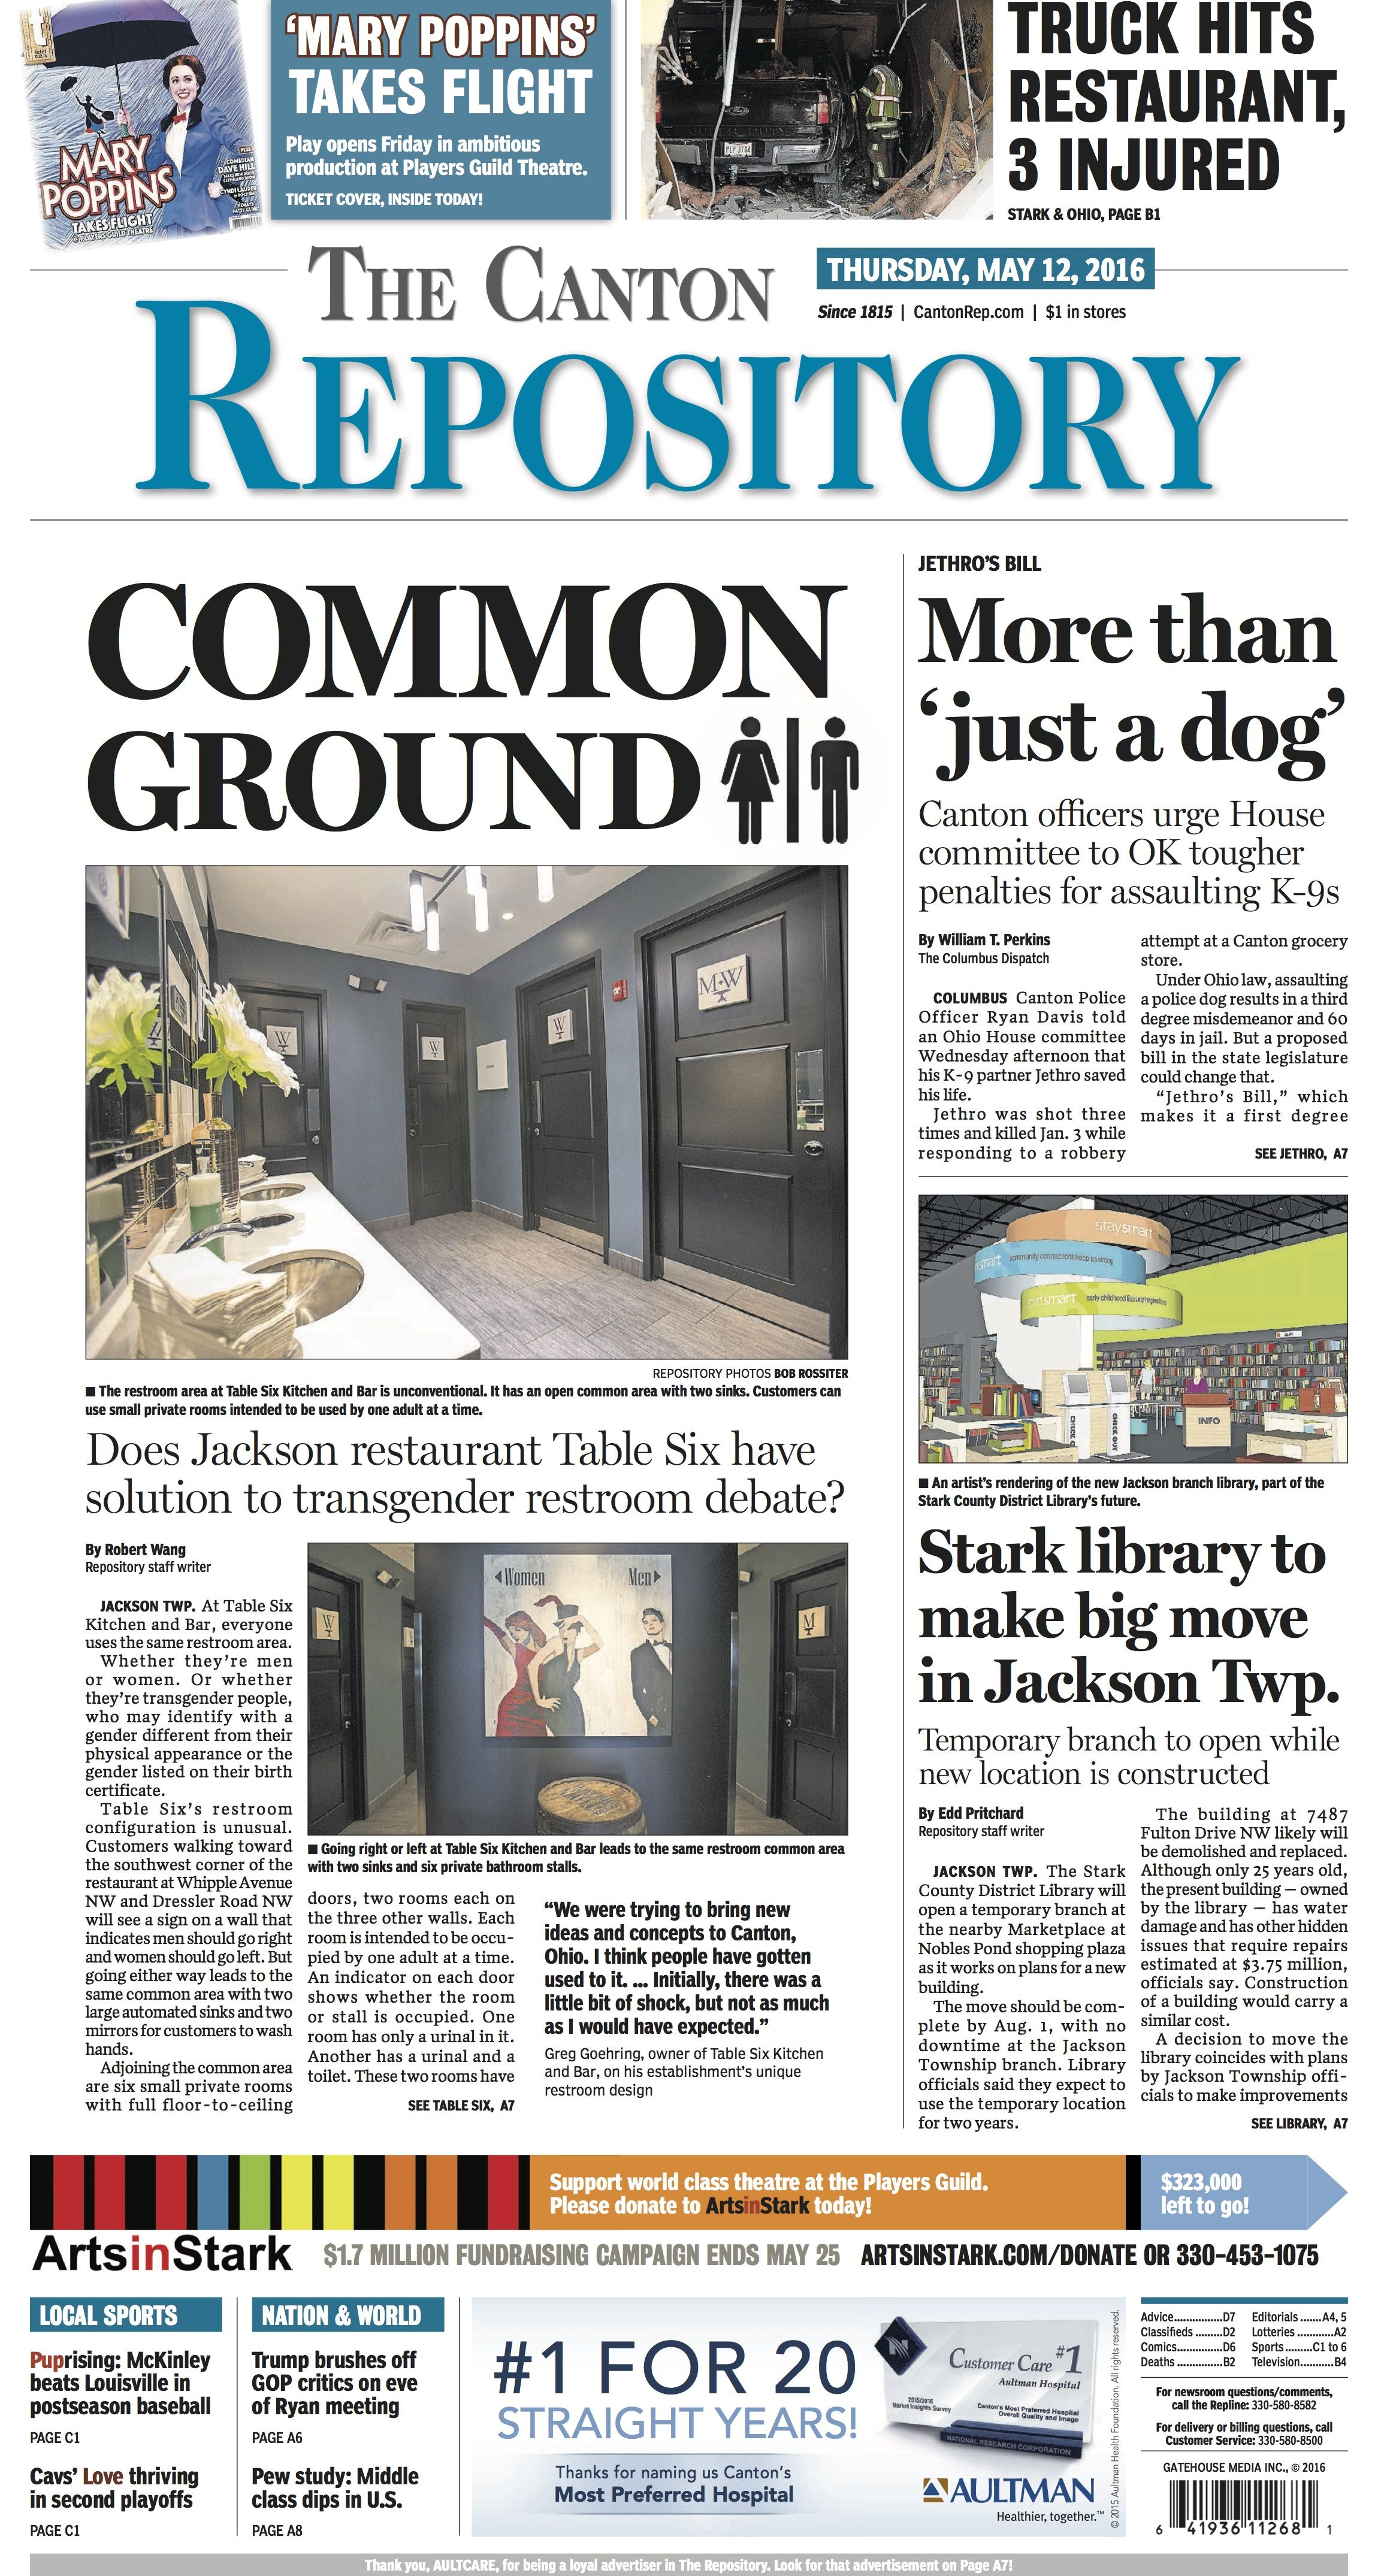 The front page of The Repository for May 12, 2016. Read more at cantonrep.com